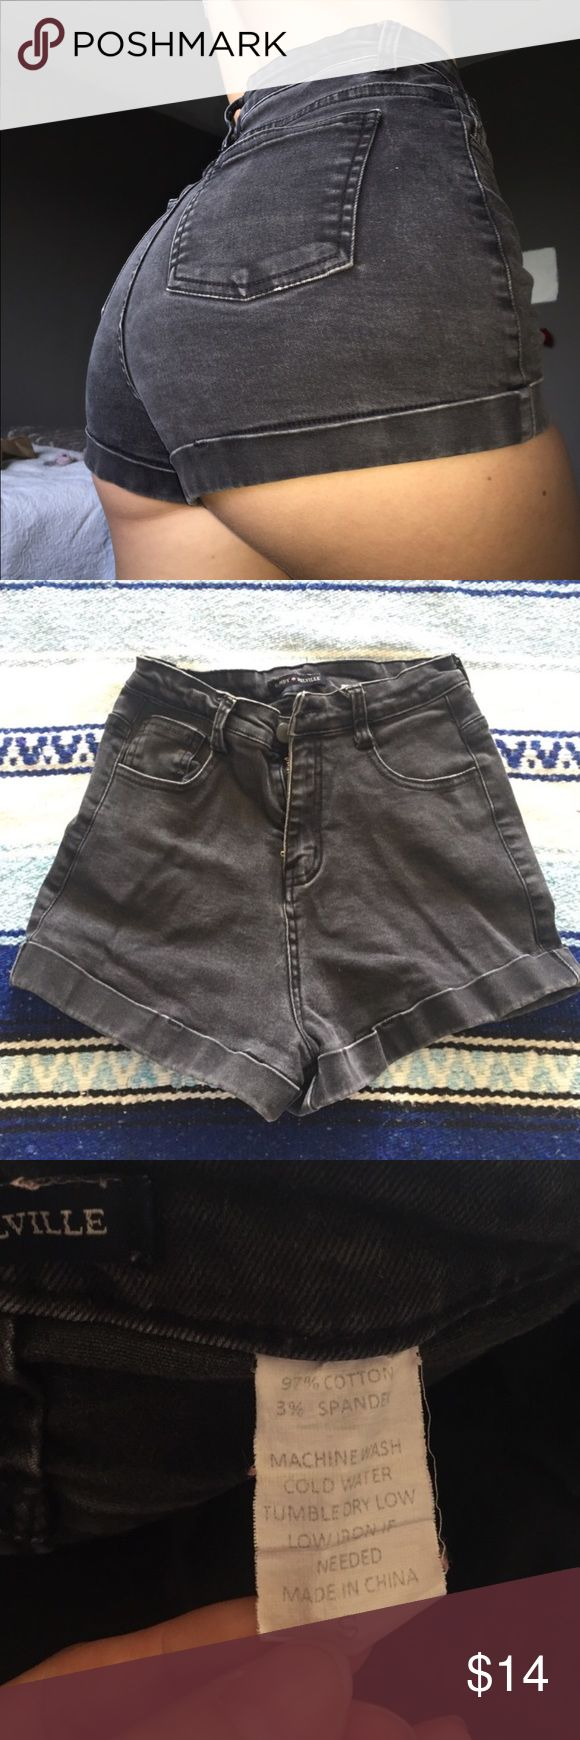 Dark grey stretchy shorts Adorable dark grey brandy shorts! Very stretchy. I don't recommend for people with big butts who don't want cheeks spilling out. Other than that supper comfy!! Can fit 24/25 Brandy Melville Shorts Jean Shorts